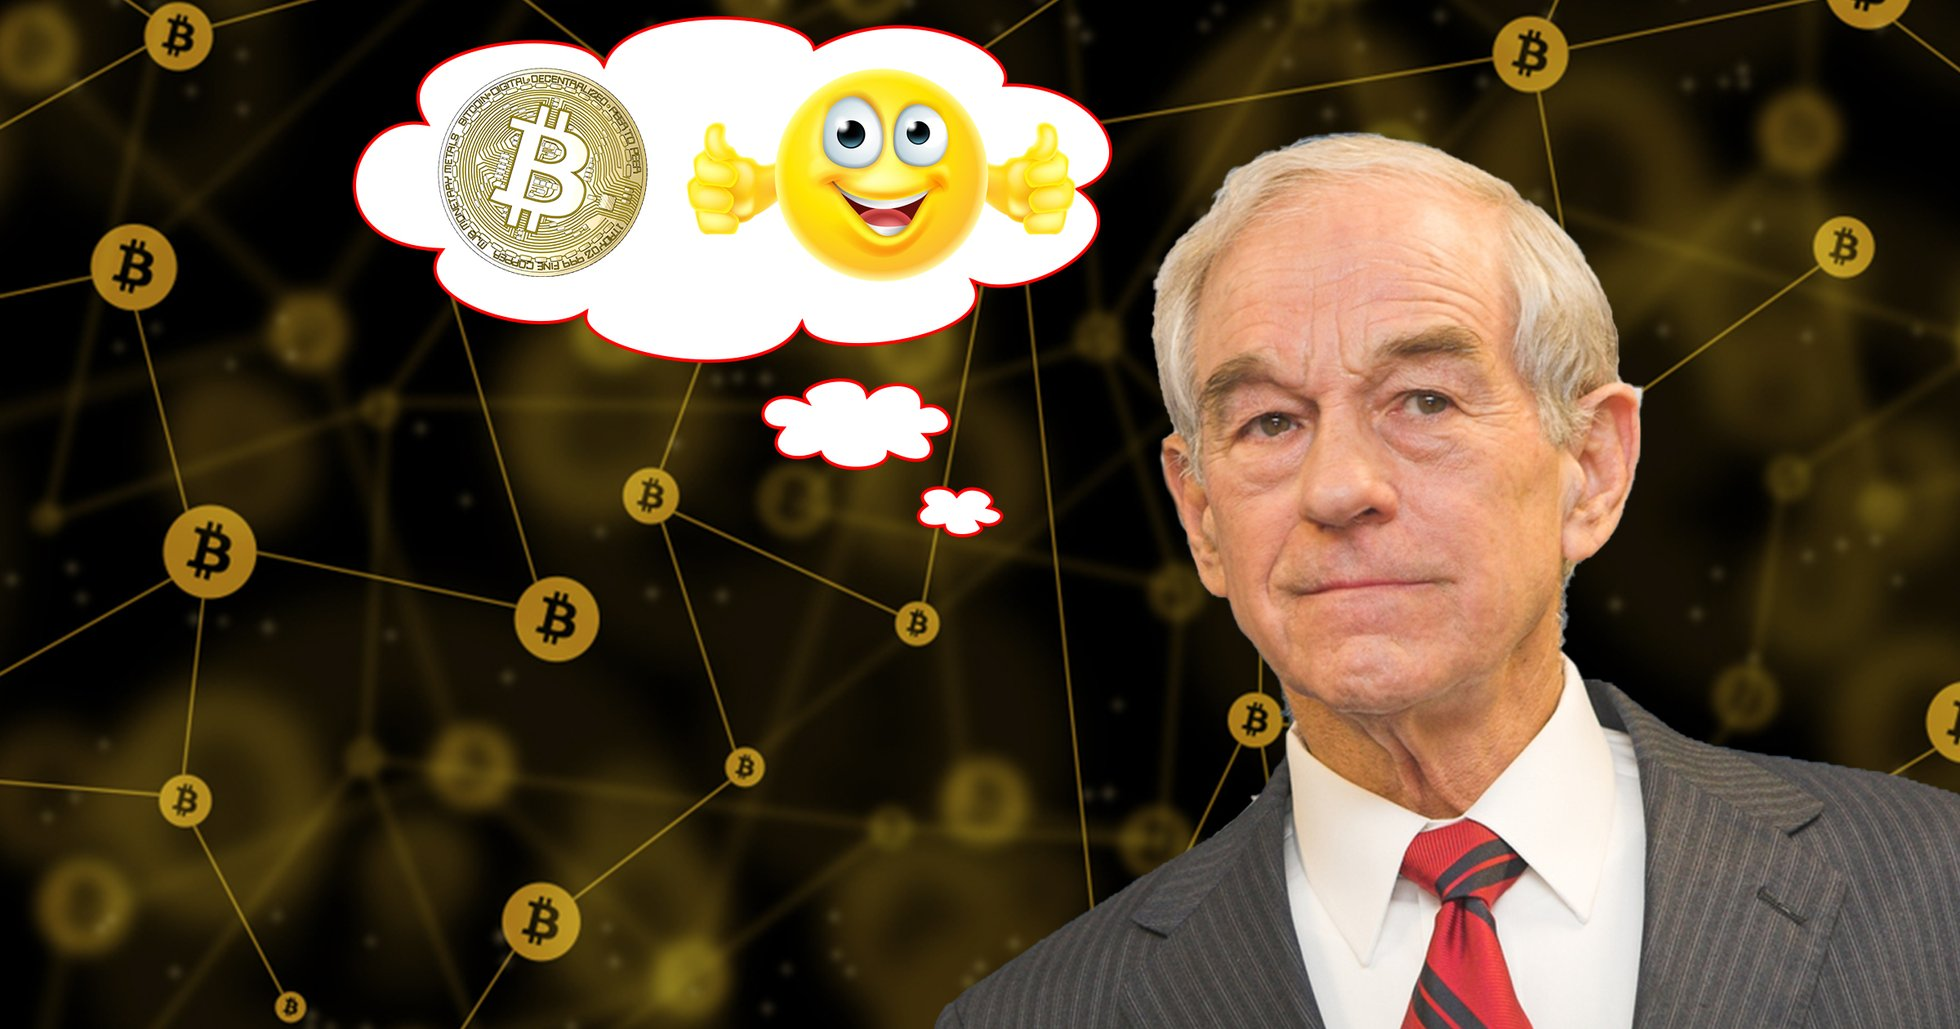 Political icon comes out as crypto supporter: I want as little regulation as possible